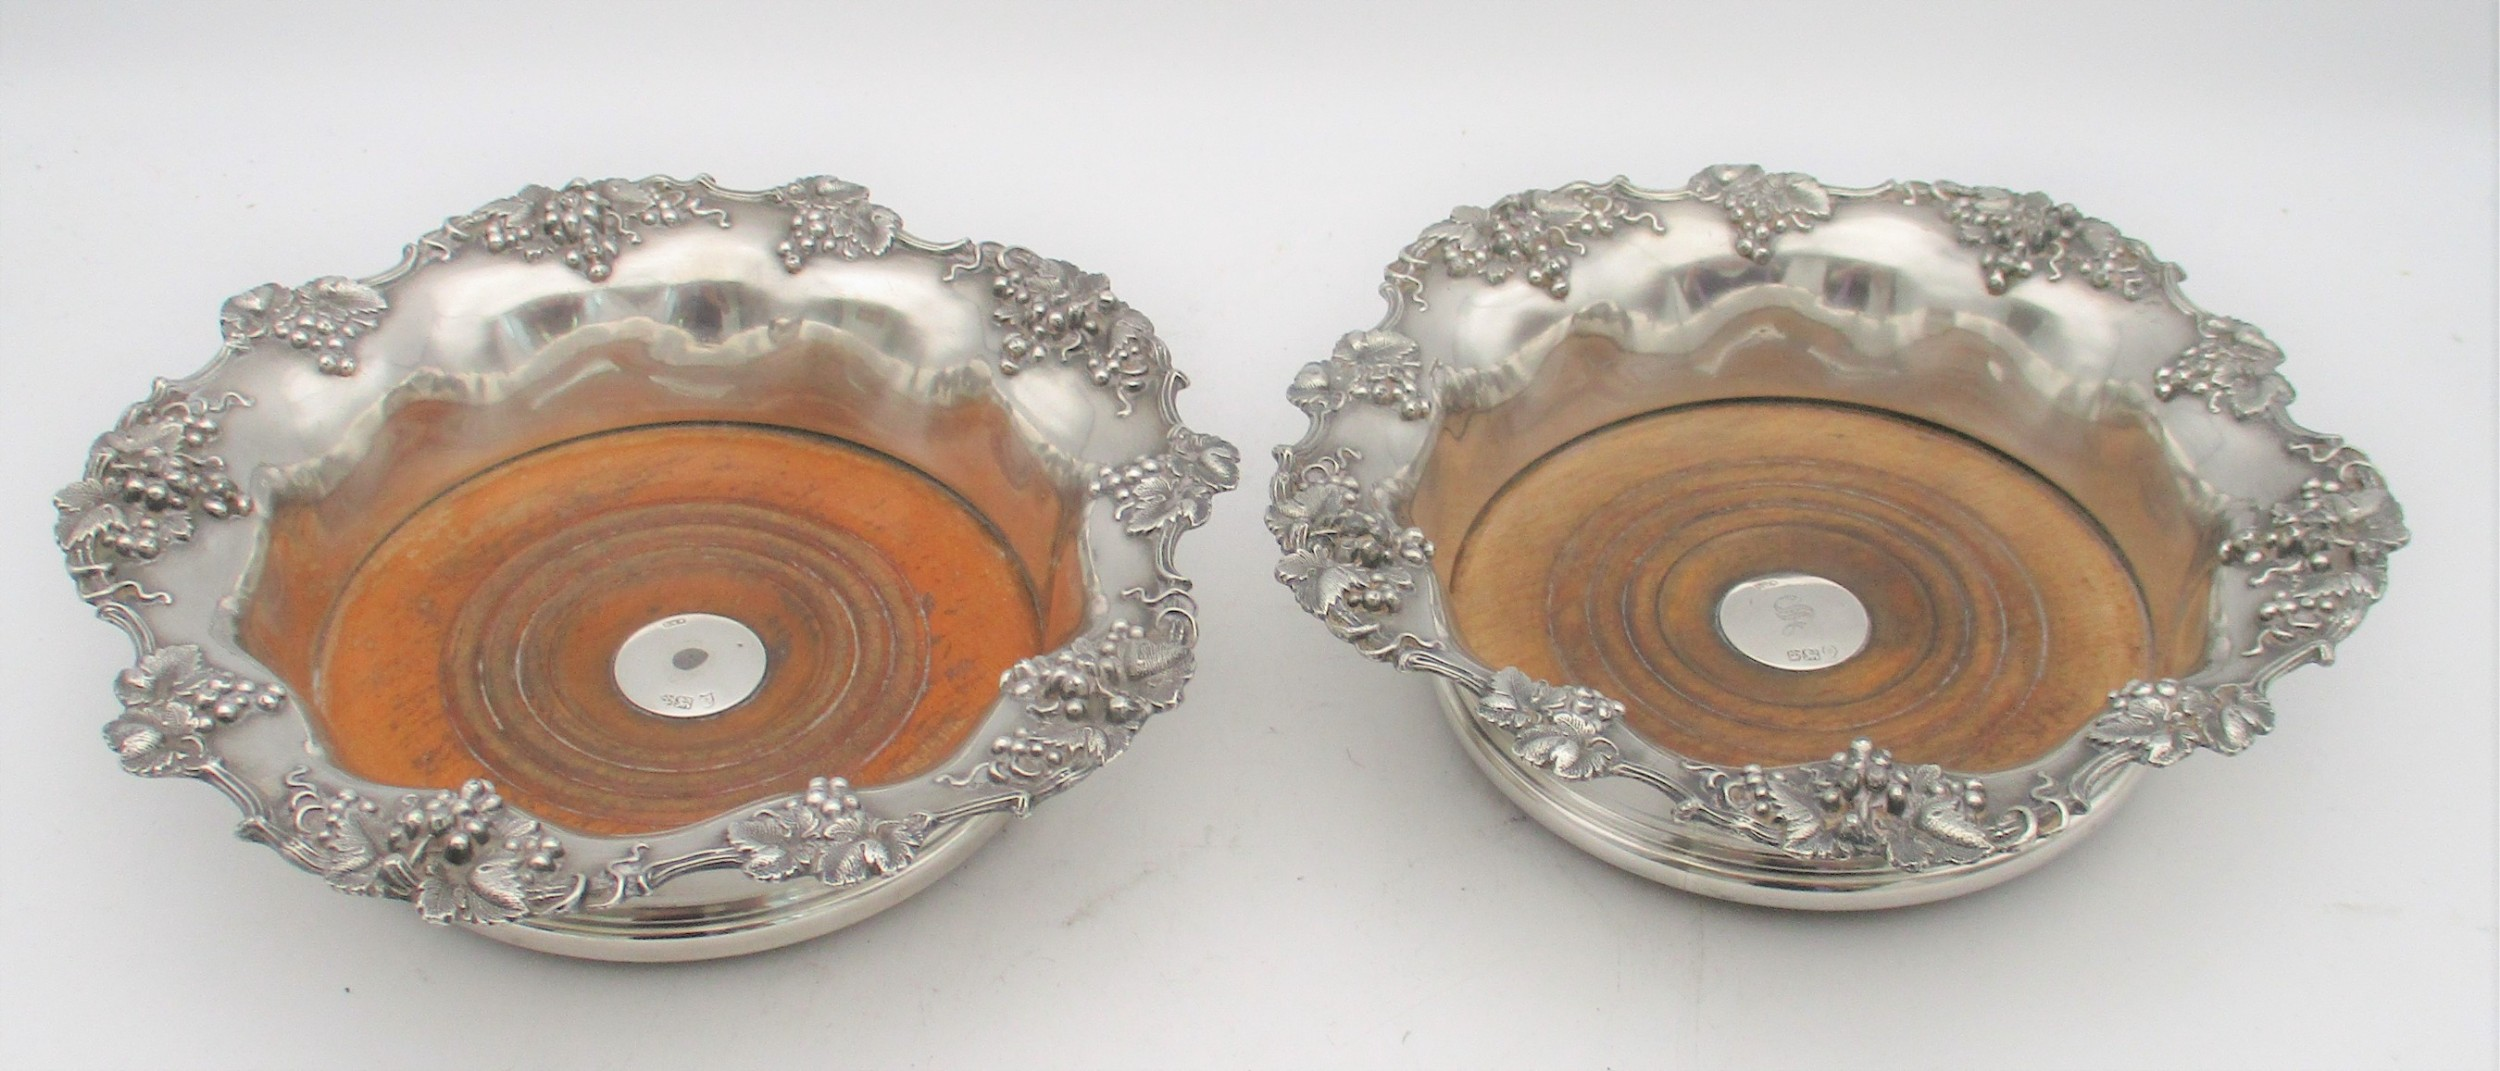 fine pair of old sheffield plated wine bottle coasters c1840